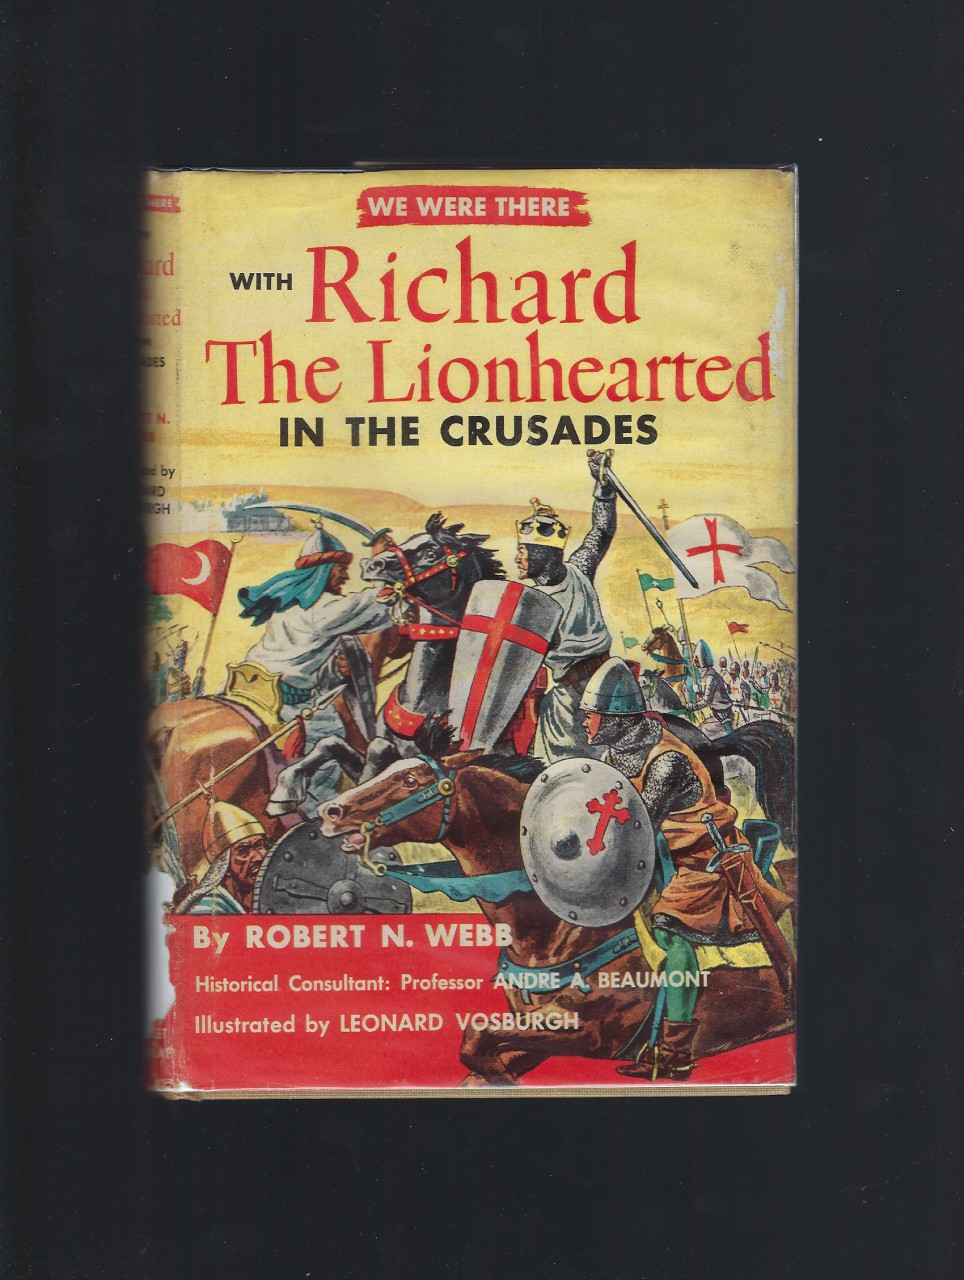 We Were There With Richard The Lionhearted In The Crusades HB/DJ, Robert N Webb; Illustrator-Andre A. Beaumont